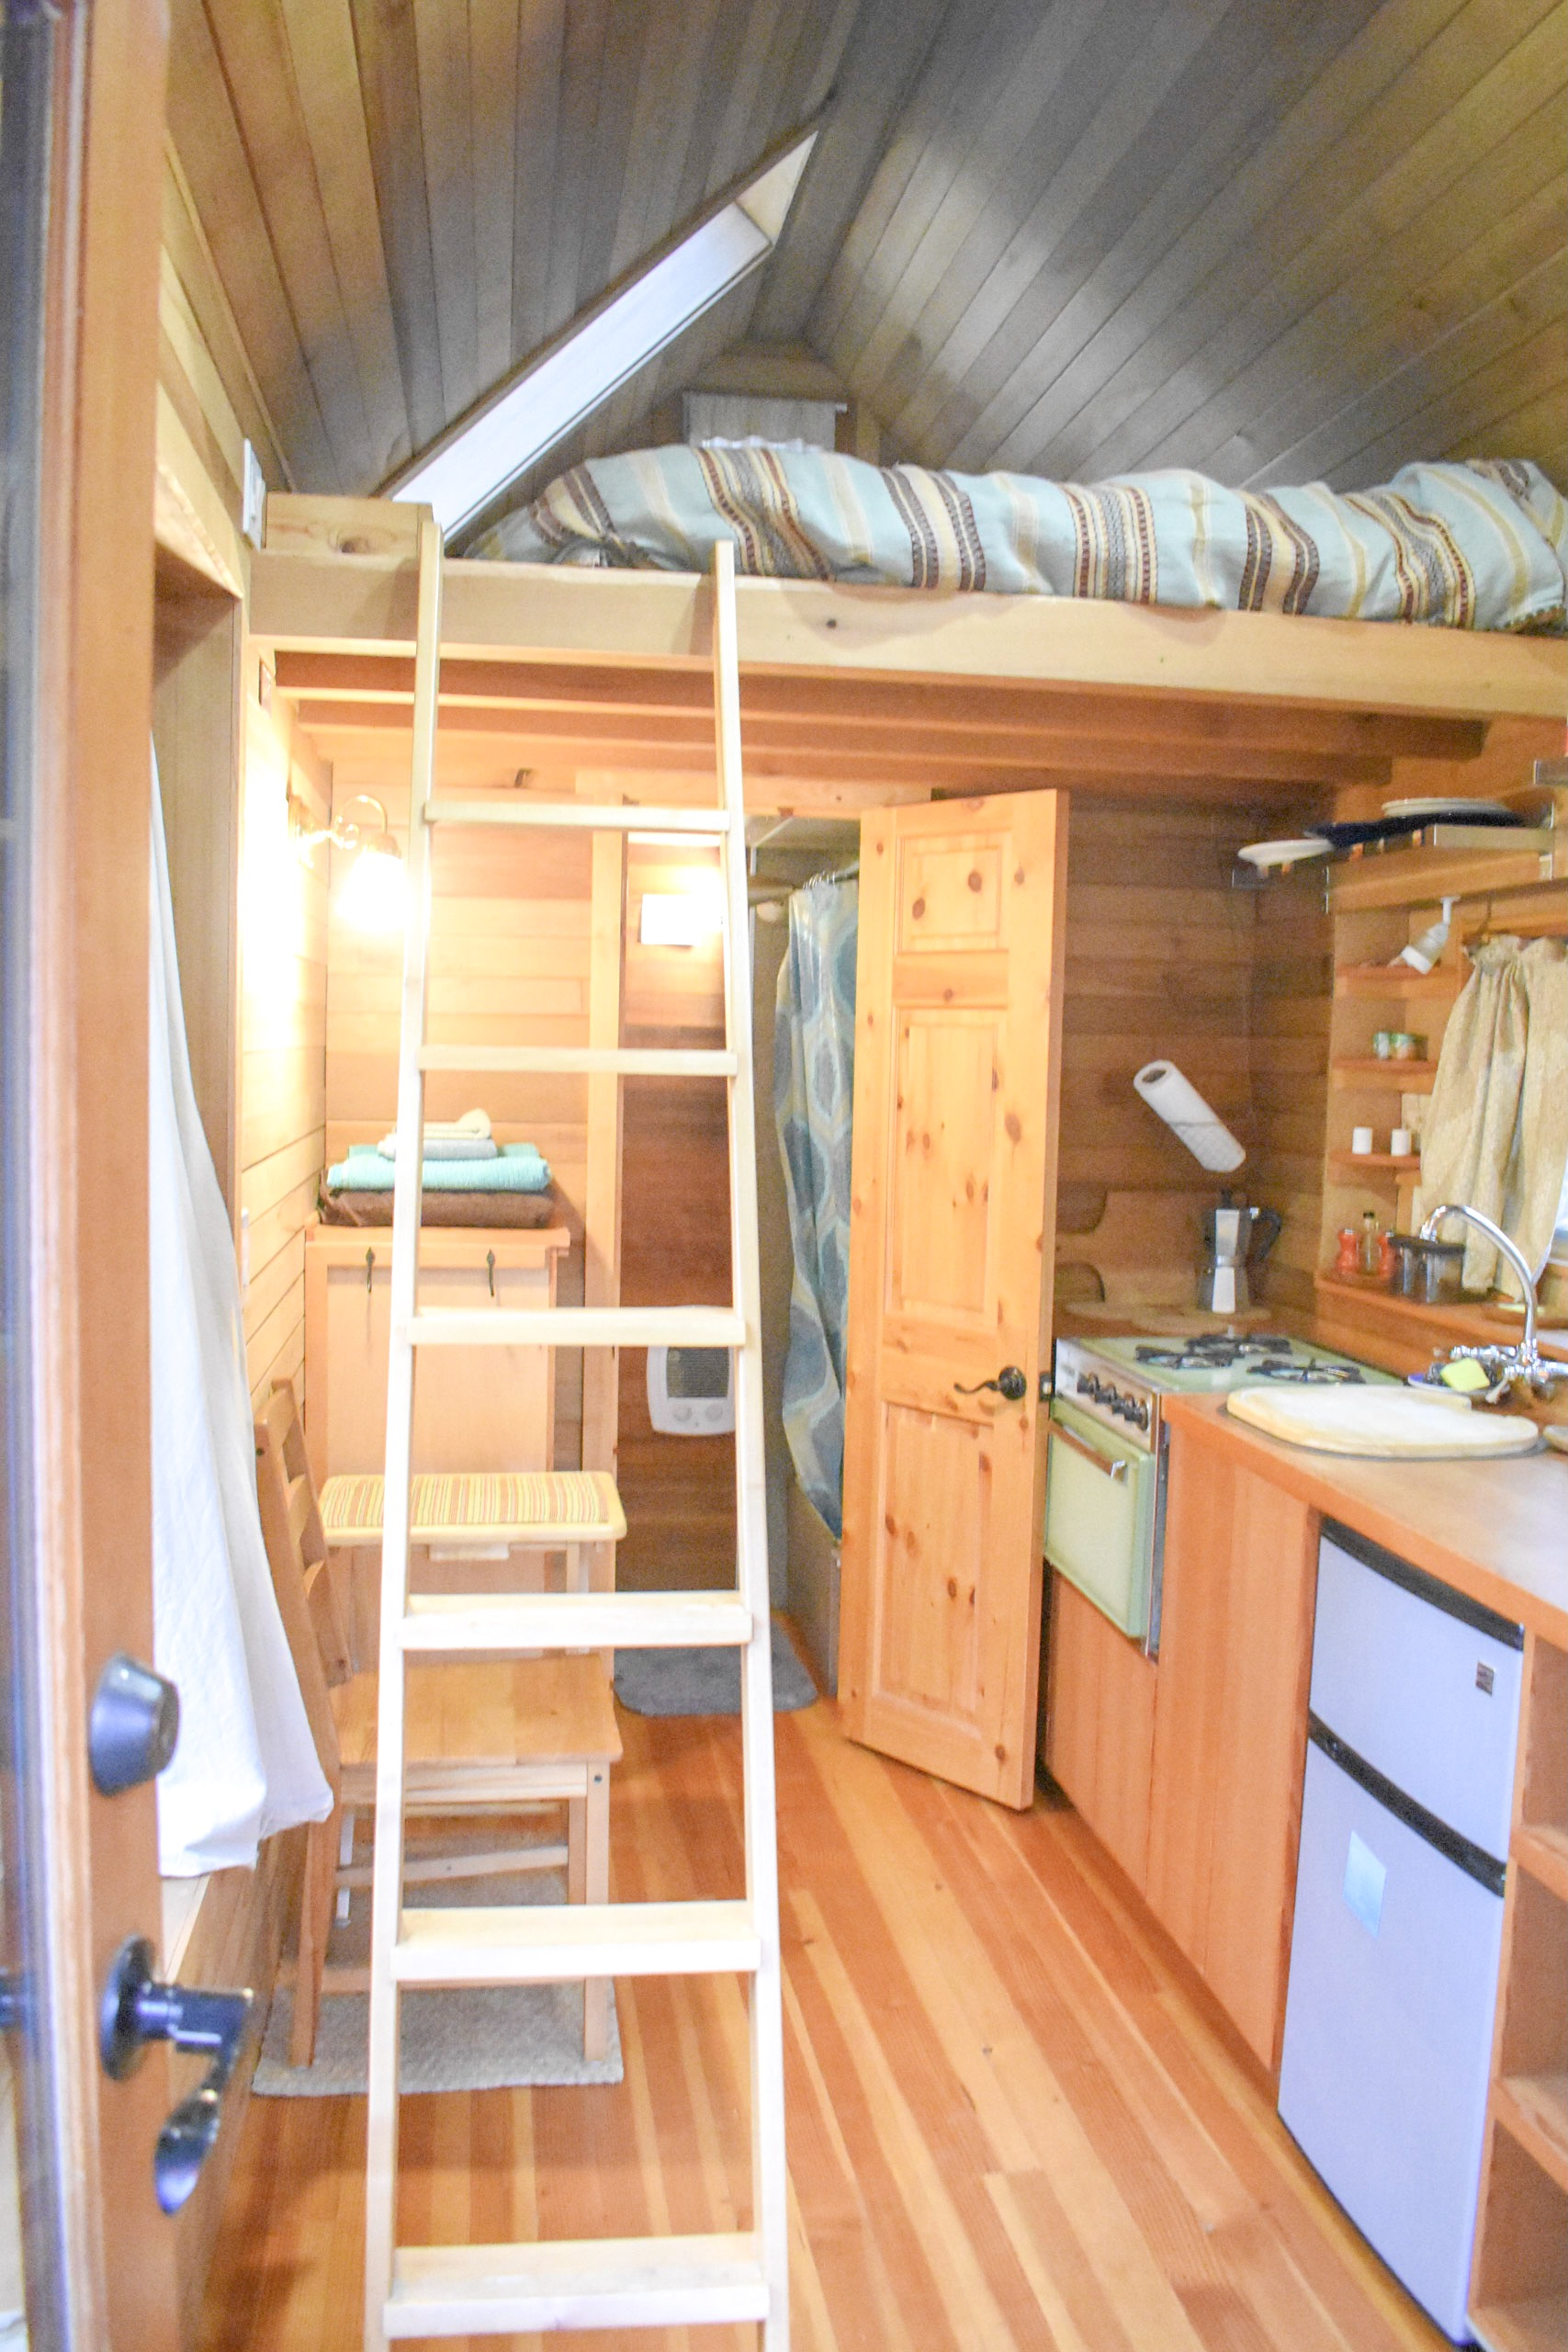 Just inside: A ladder leading up to the loft bed, a minimalist kitchen, and a bathroom.